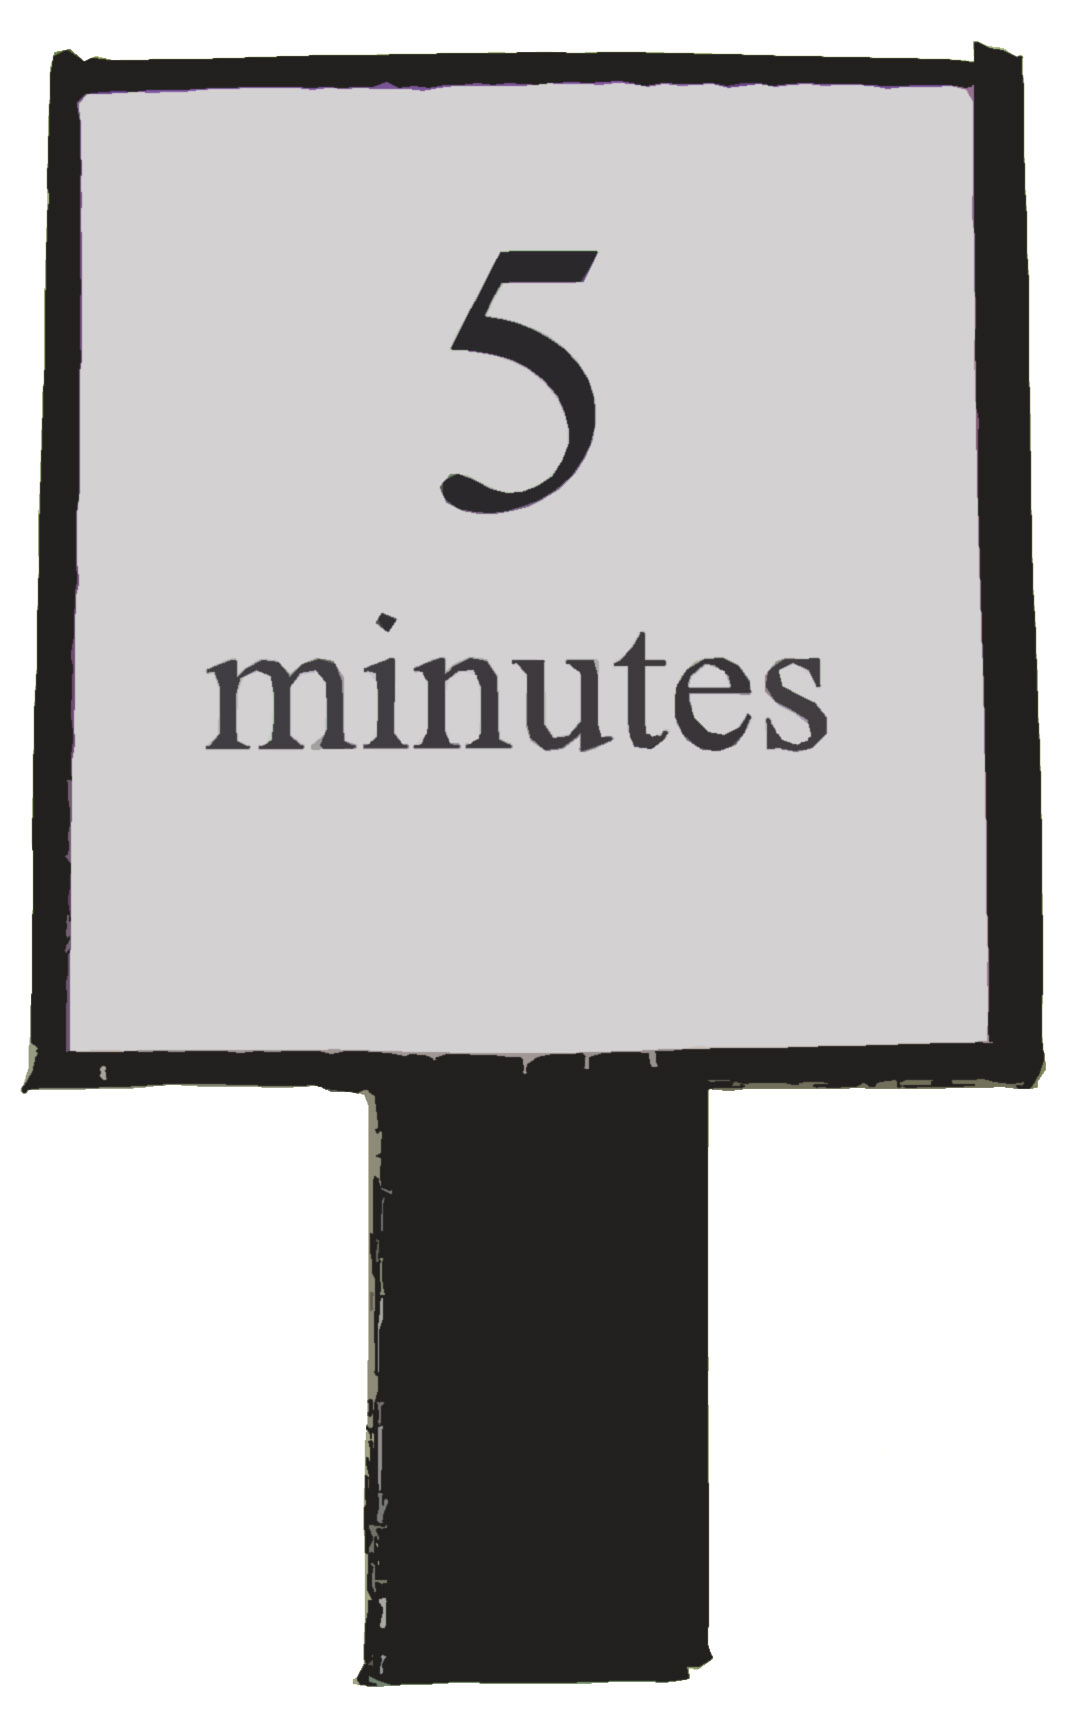 The First 5 Minutes How To Turn Good Intentions Into